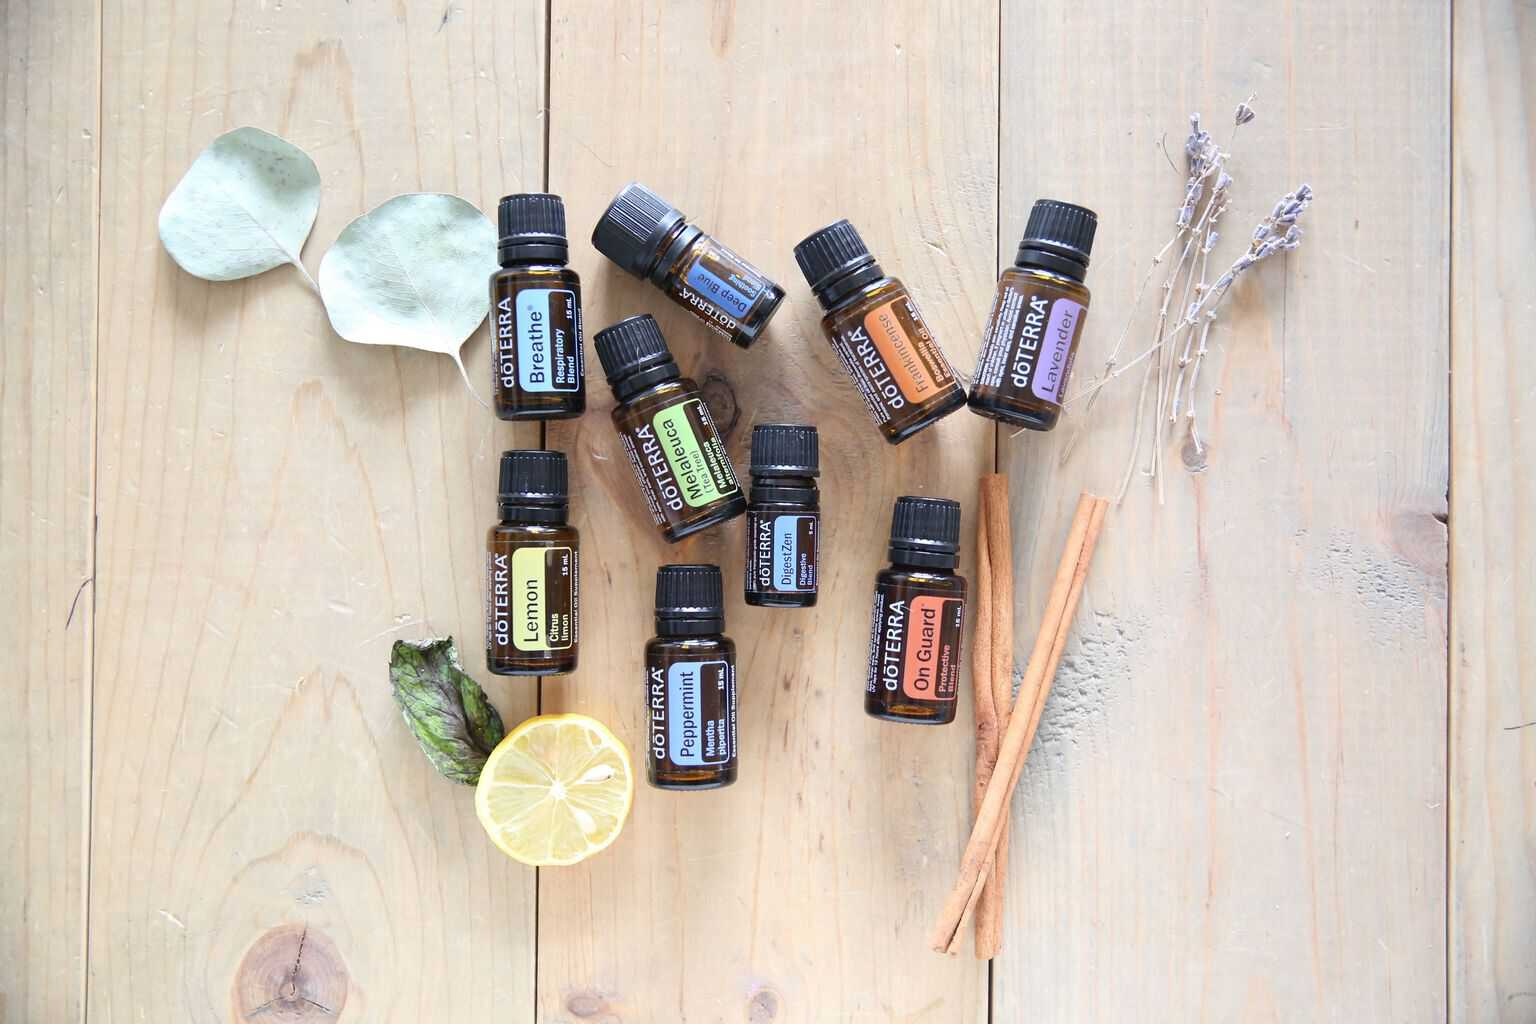 Learn which oils we use in our home to keep us healthy and to create a toxic free home.